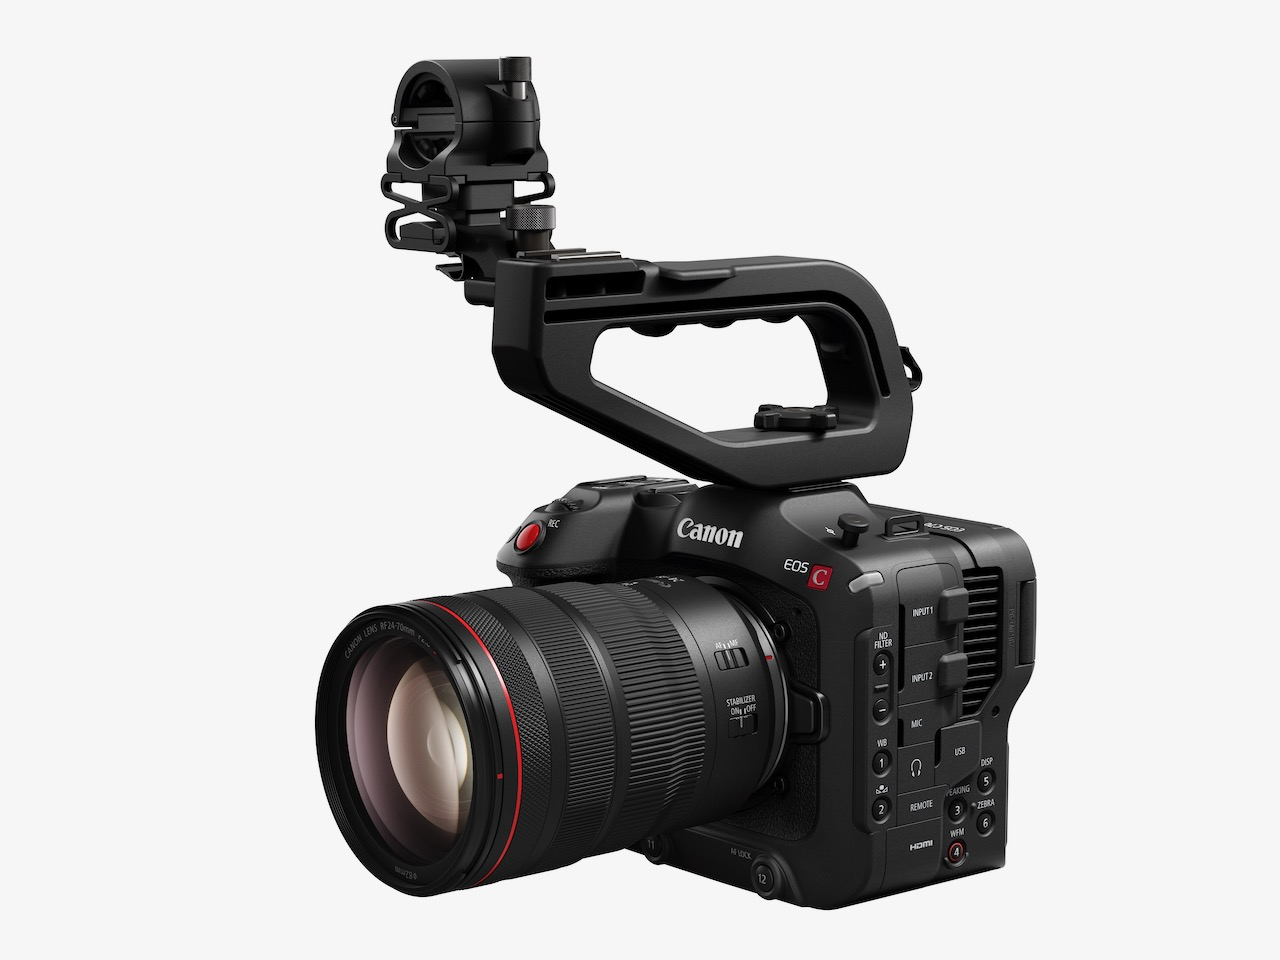 Canon announced EOS C70